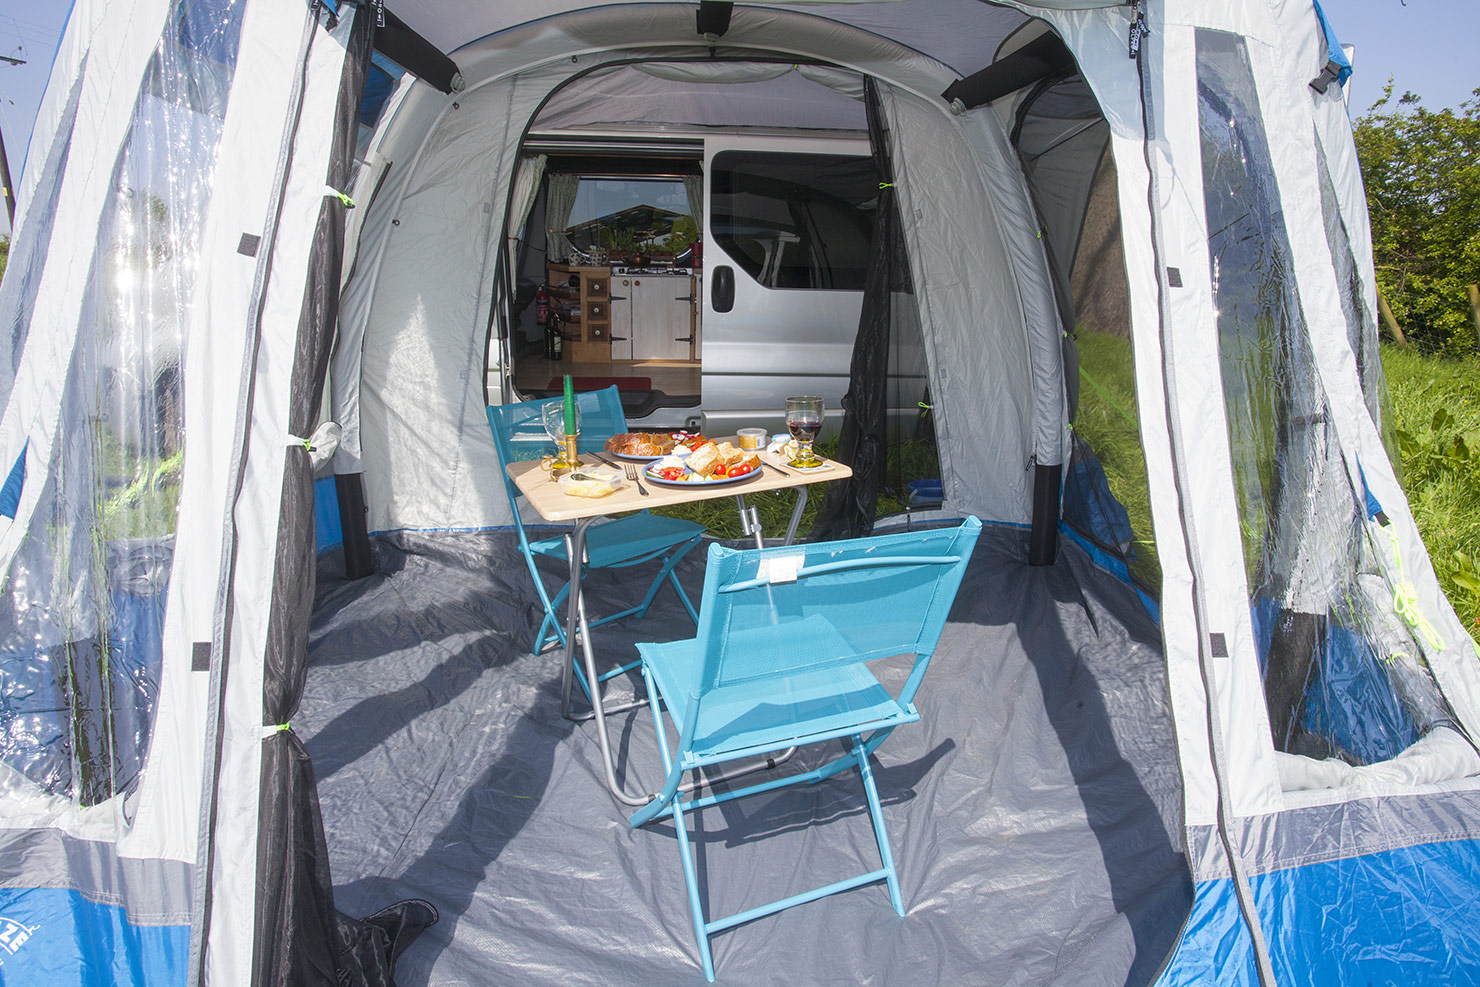 Relax in the Air Awning, you can't get any closer to nature than this.